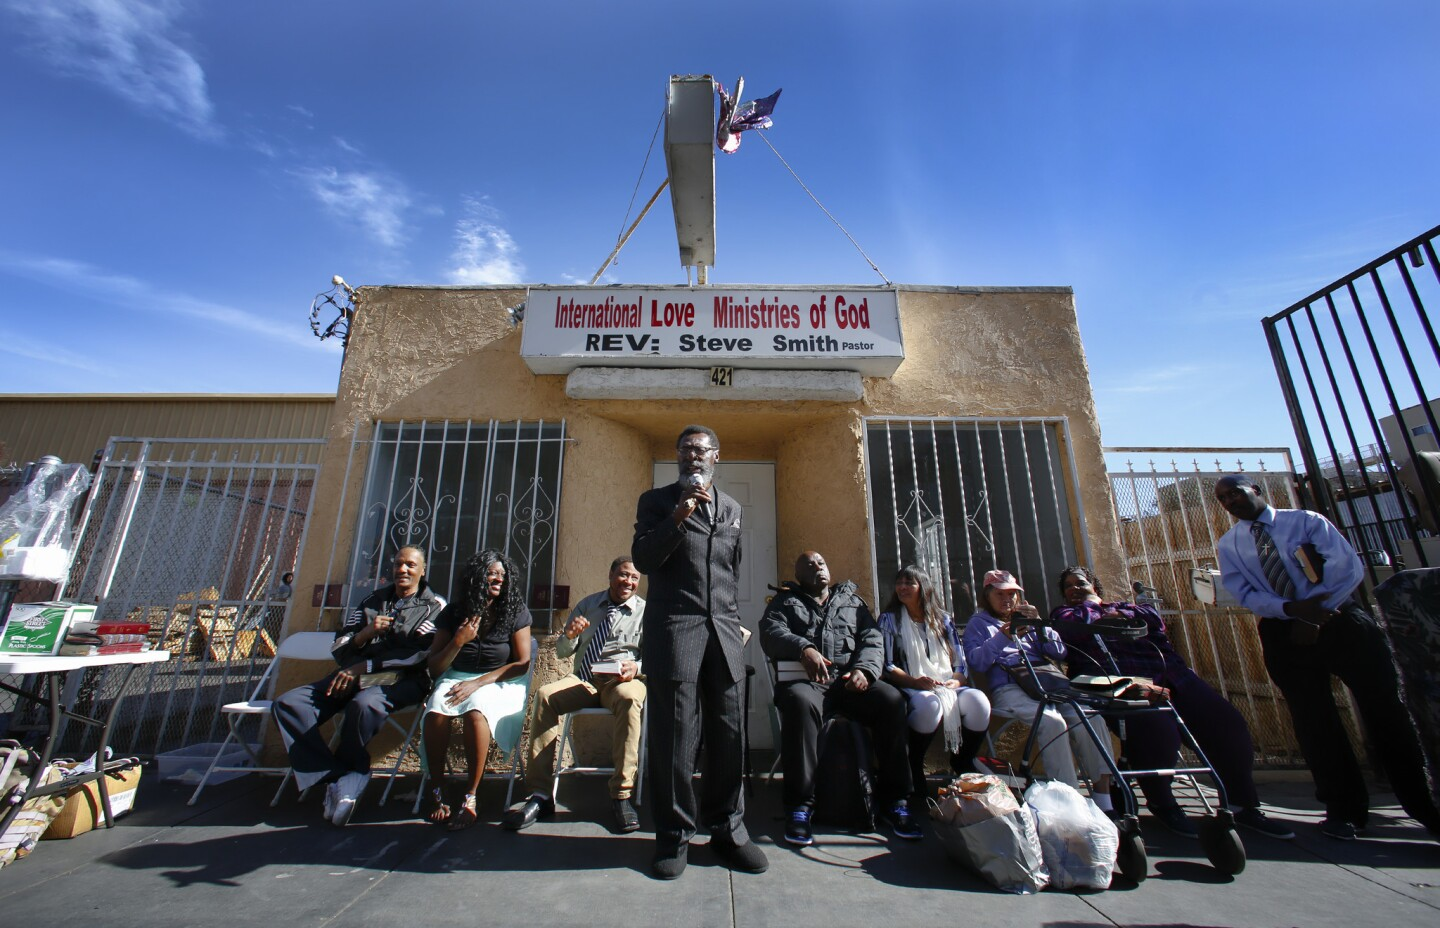 Standing in front of their former church building, the International Love Ministries of God on 16th Street in downtown San Diego, Rev. Steve Smith preaches on Sunday morning to his congregation. The group loss their lease at the end of December but continue to meet out in front on the city sidewalk.